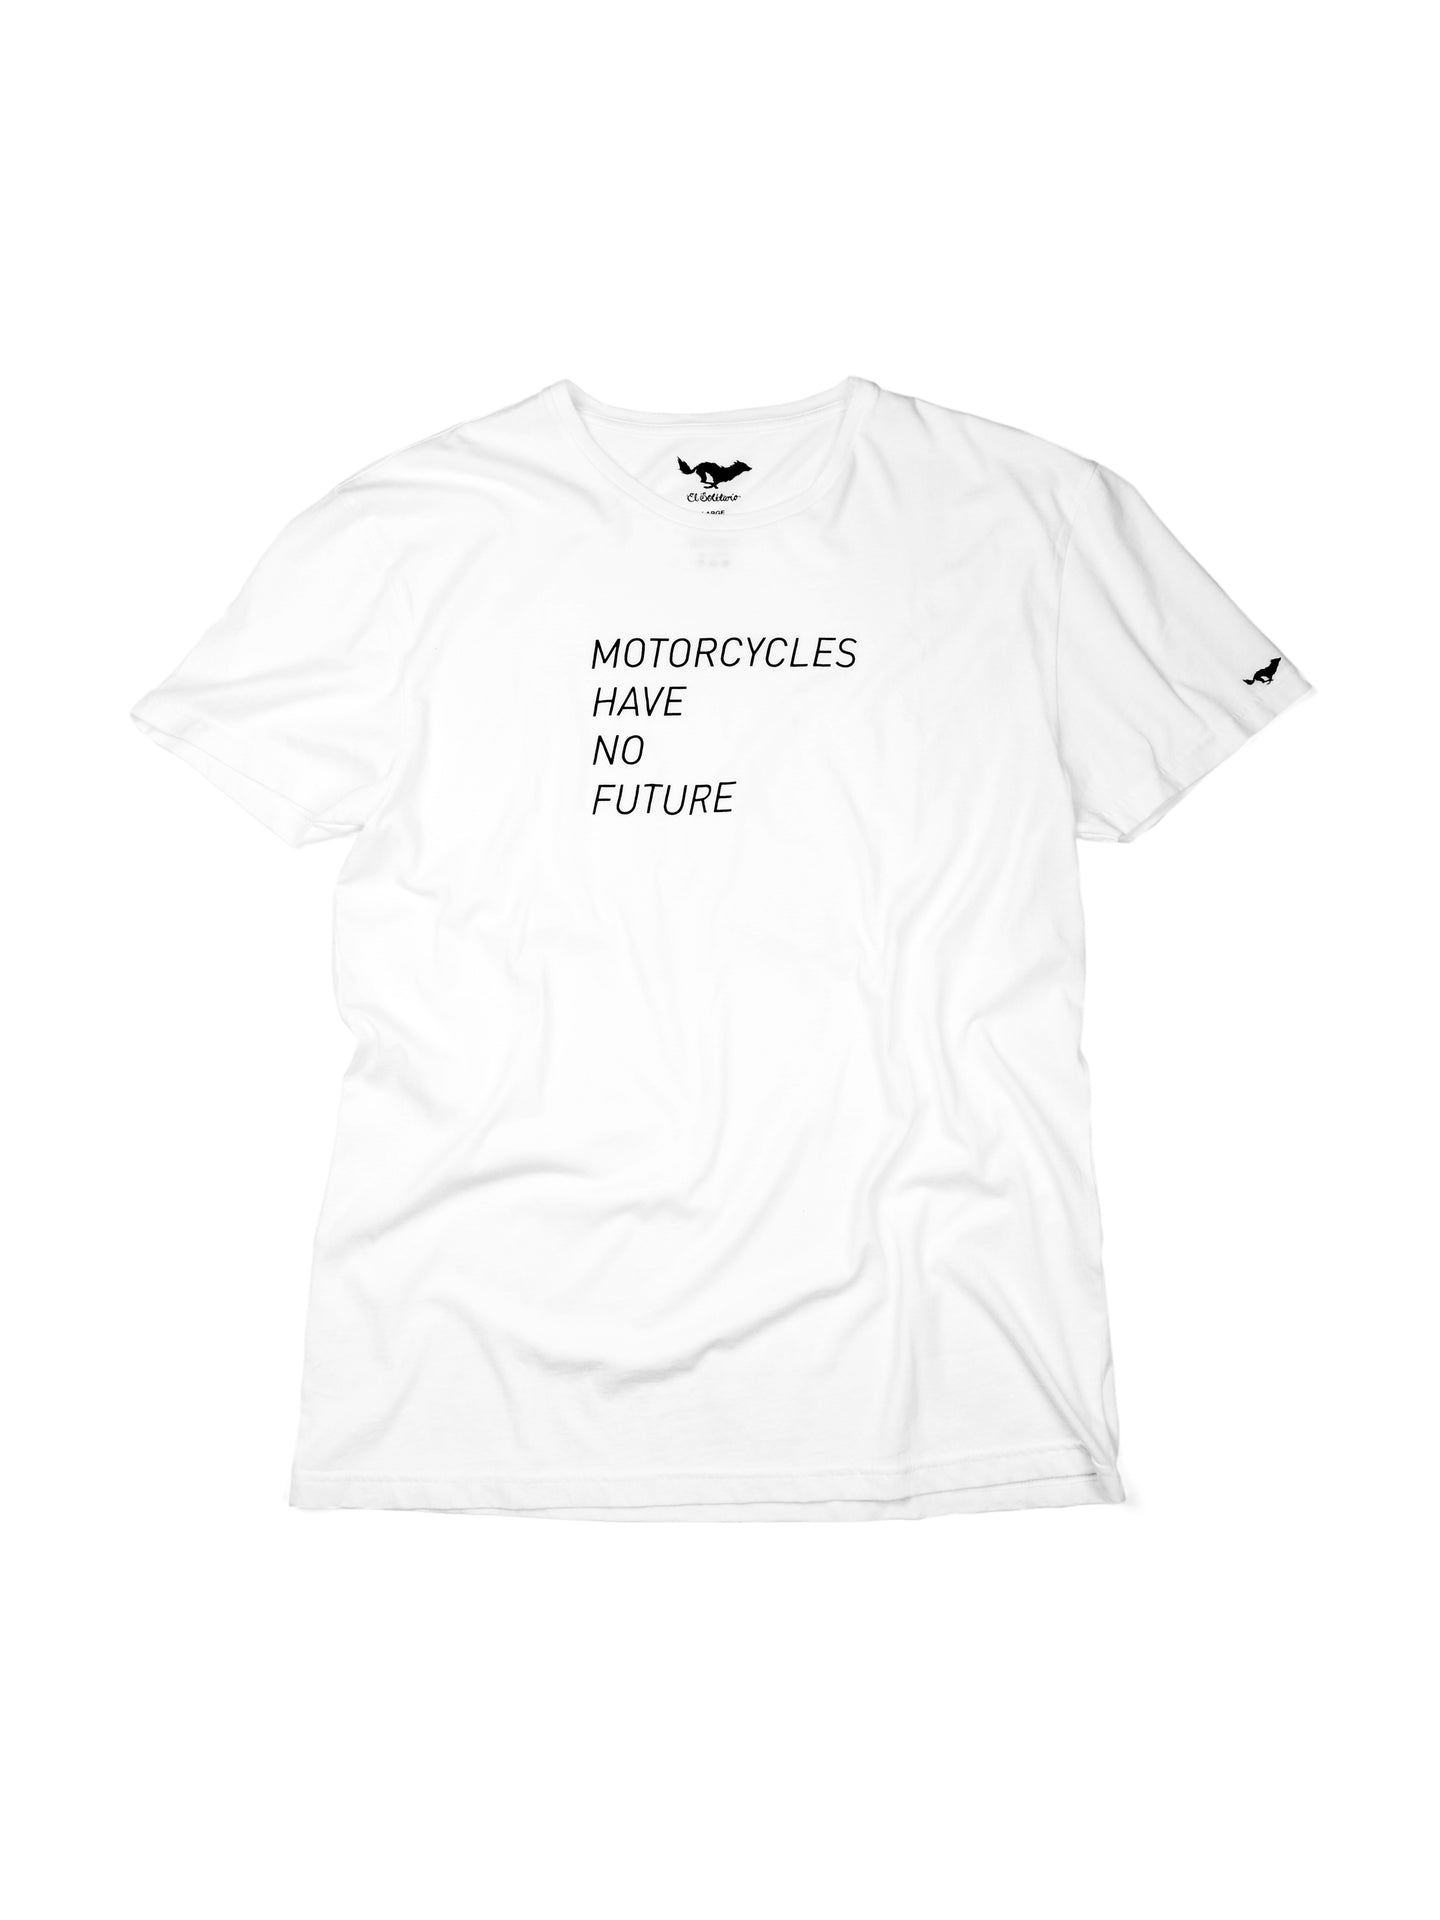 El Solitario No Future White T-Shirt. Front